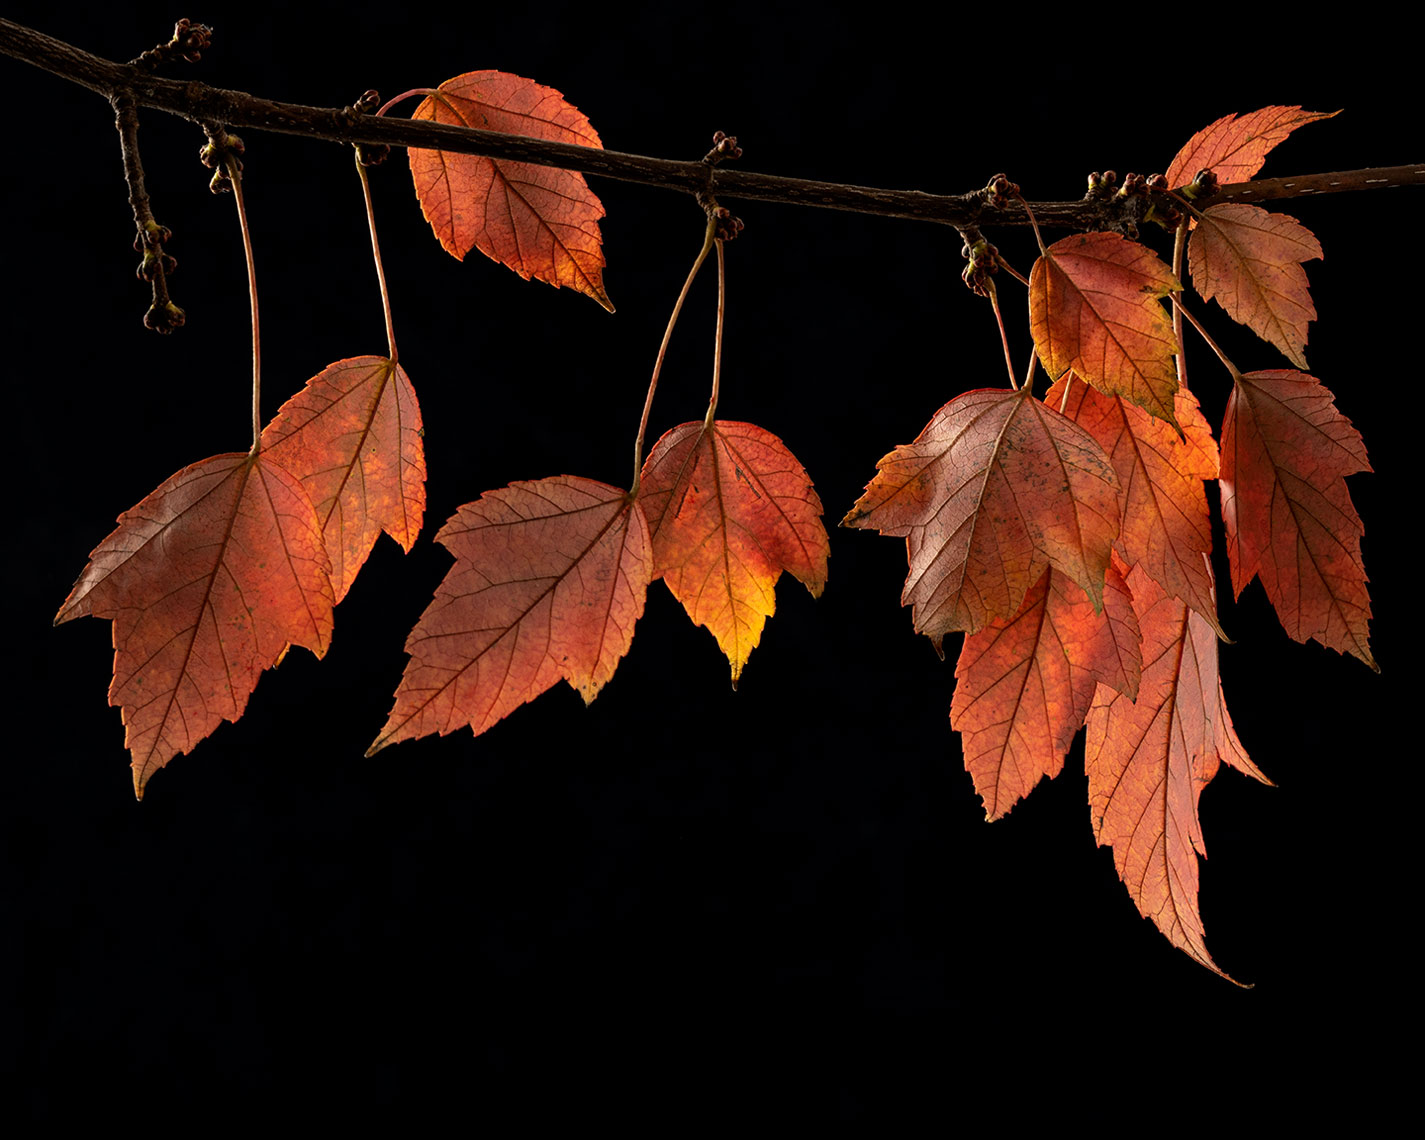 Leaves-15-copy